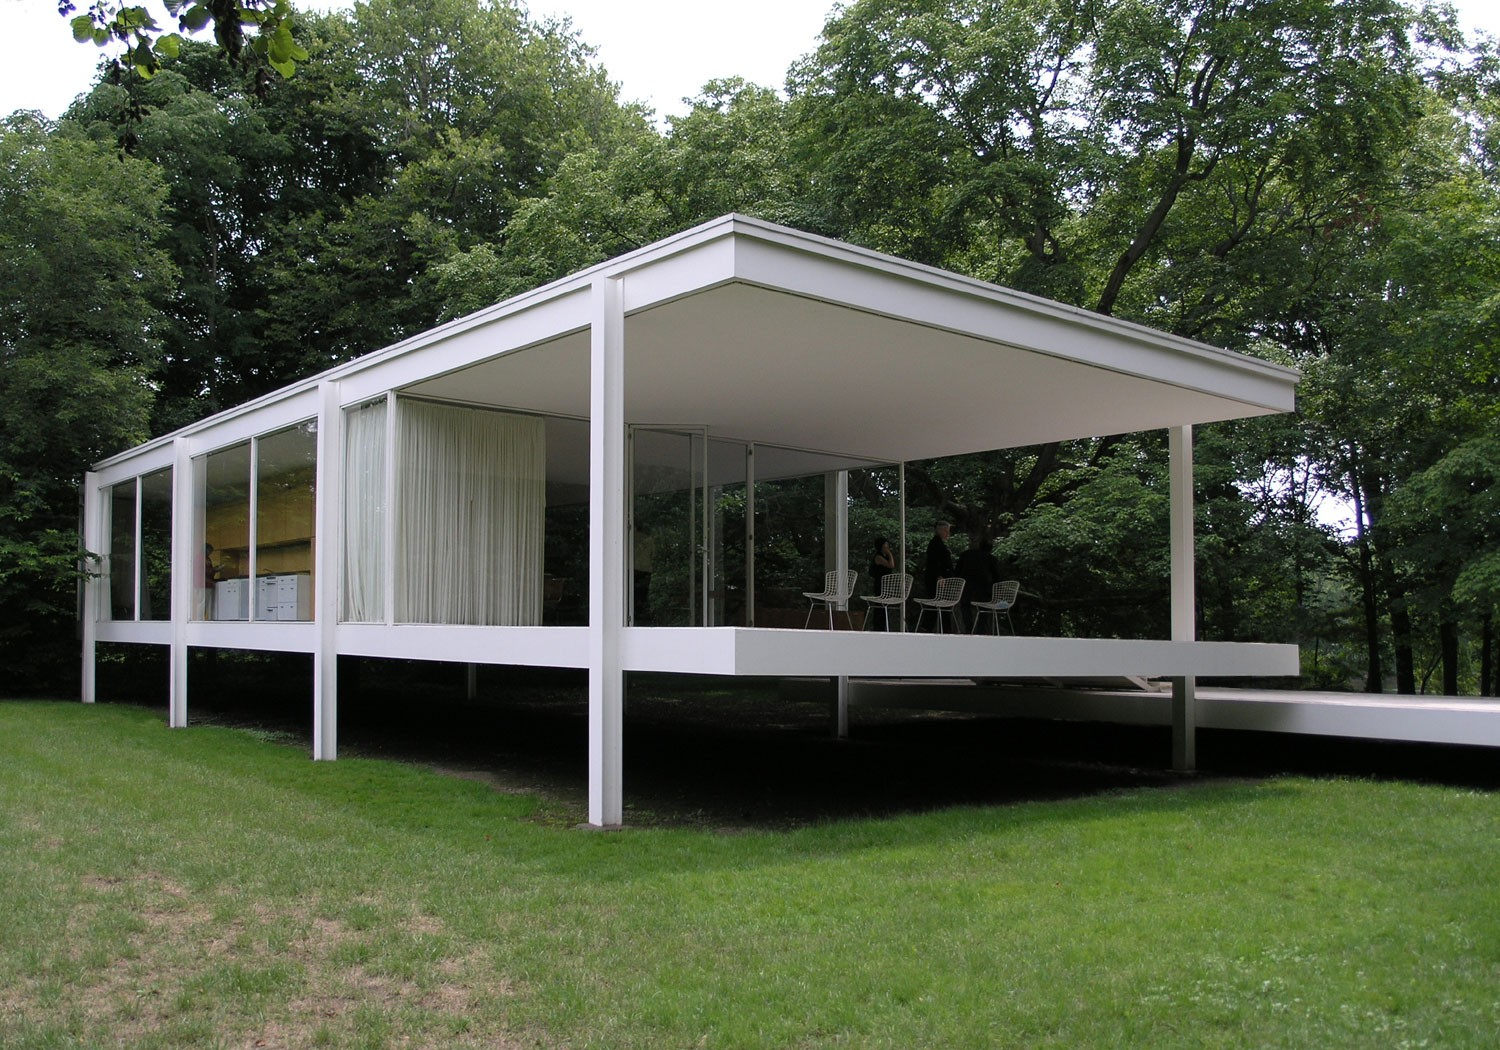 Farnsworth house buildings of chicago chicago for Home architectures